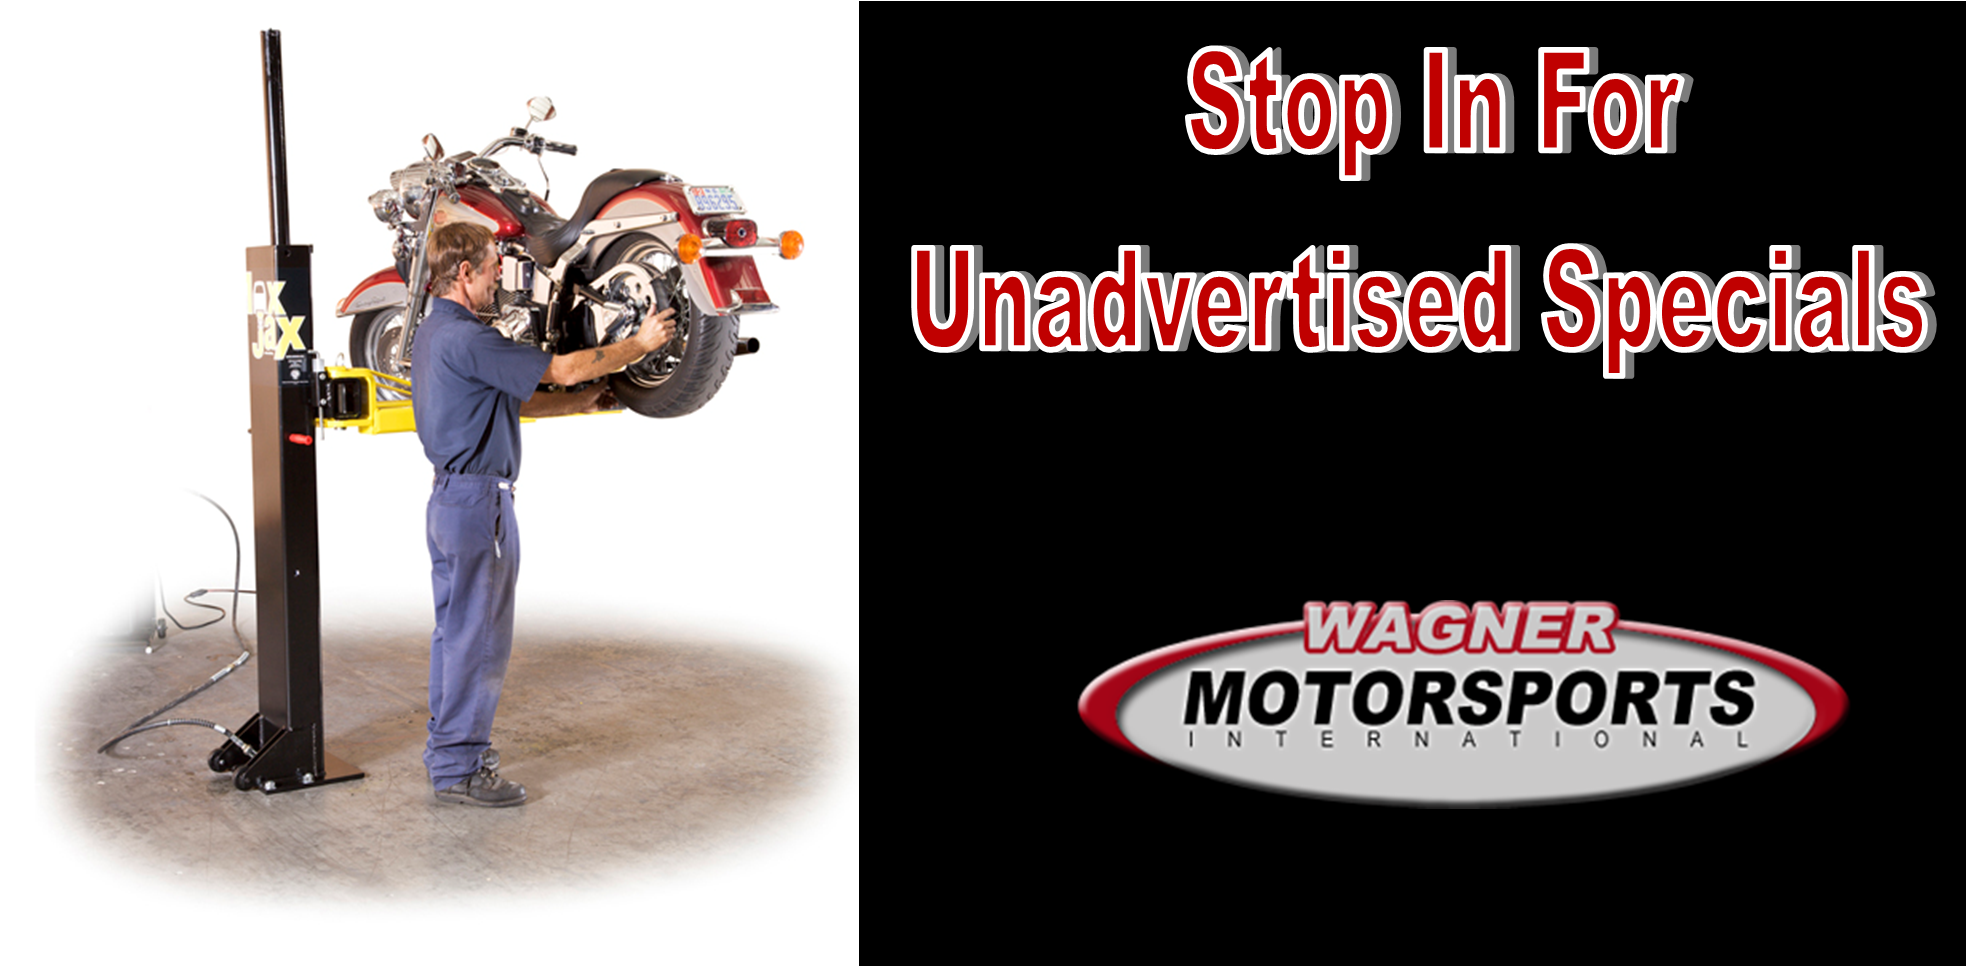 Wagner Motors Vehicles For Sale In Shrewsbury Ma 01545